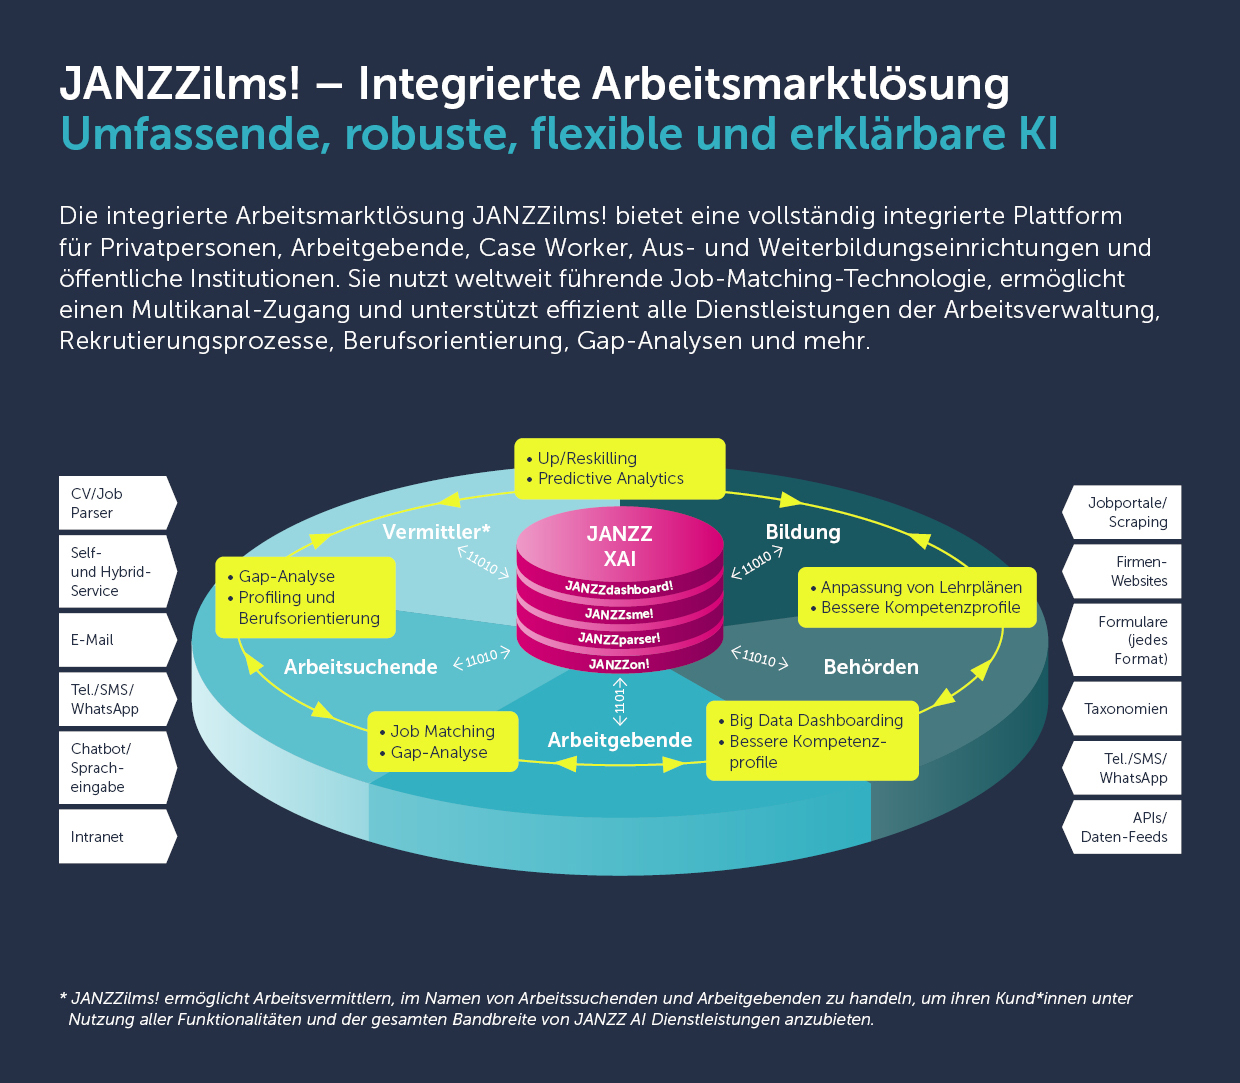 JANZZ Integrated Labor Market Solution (ILMS)